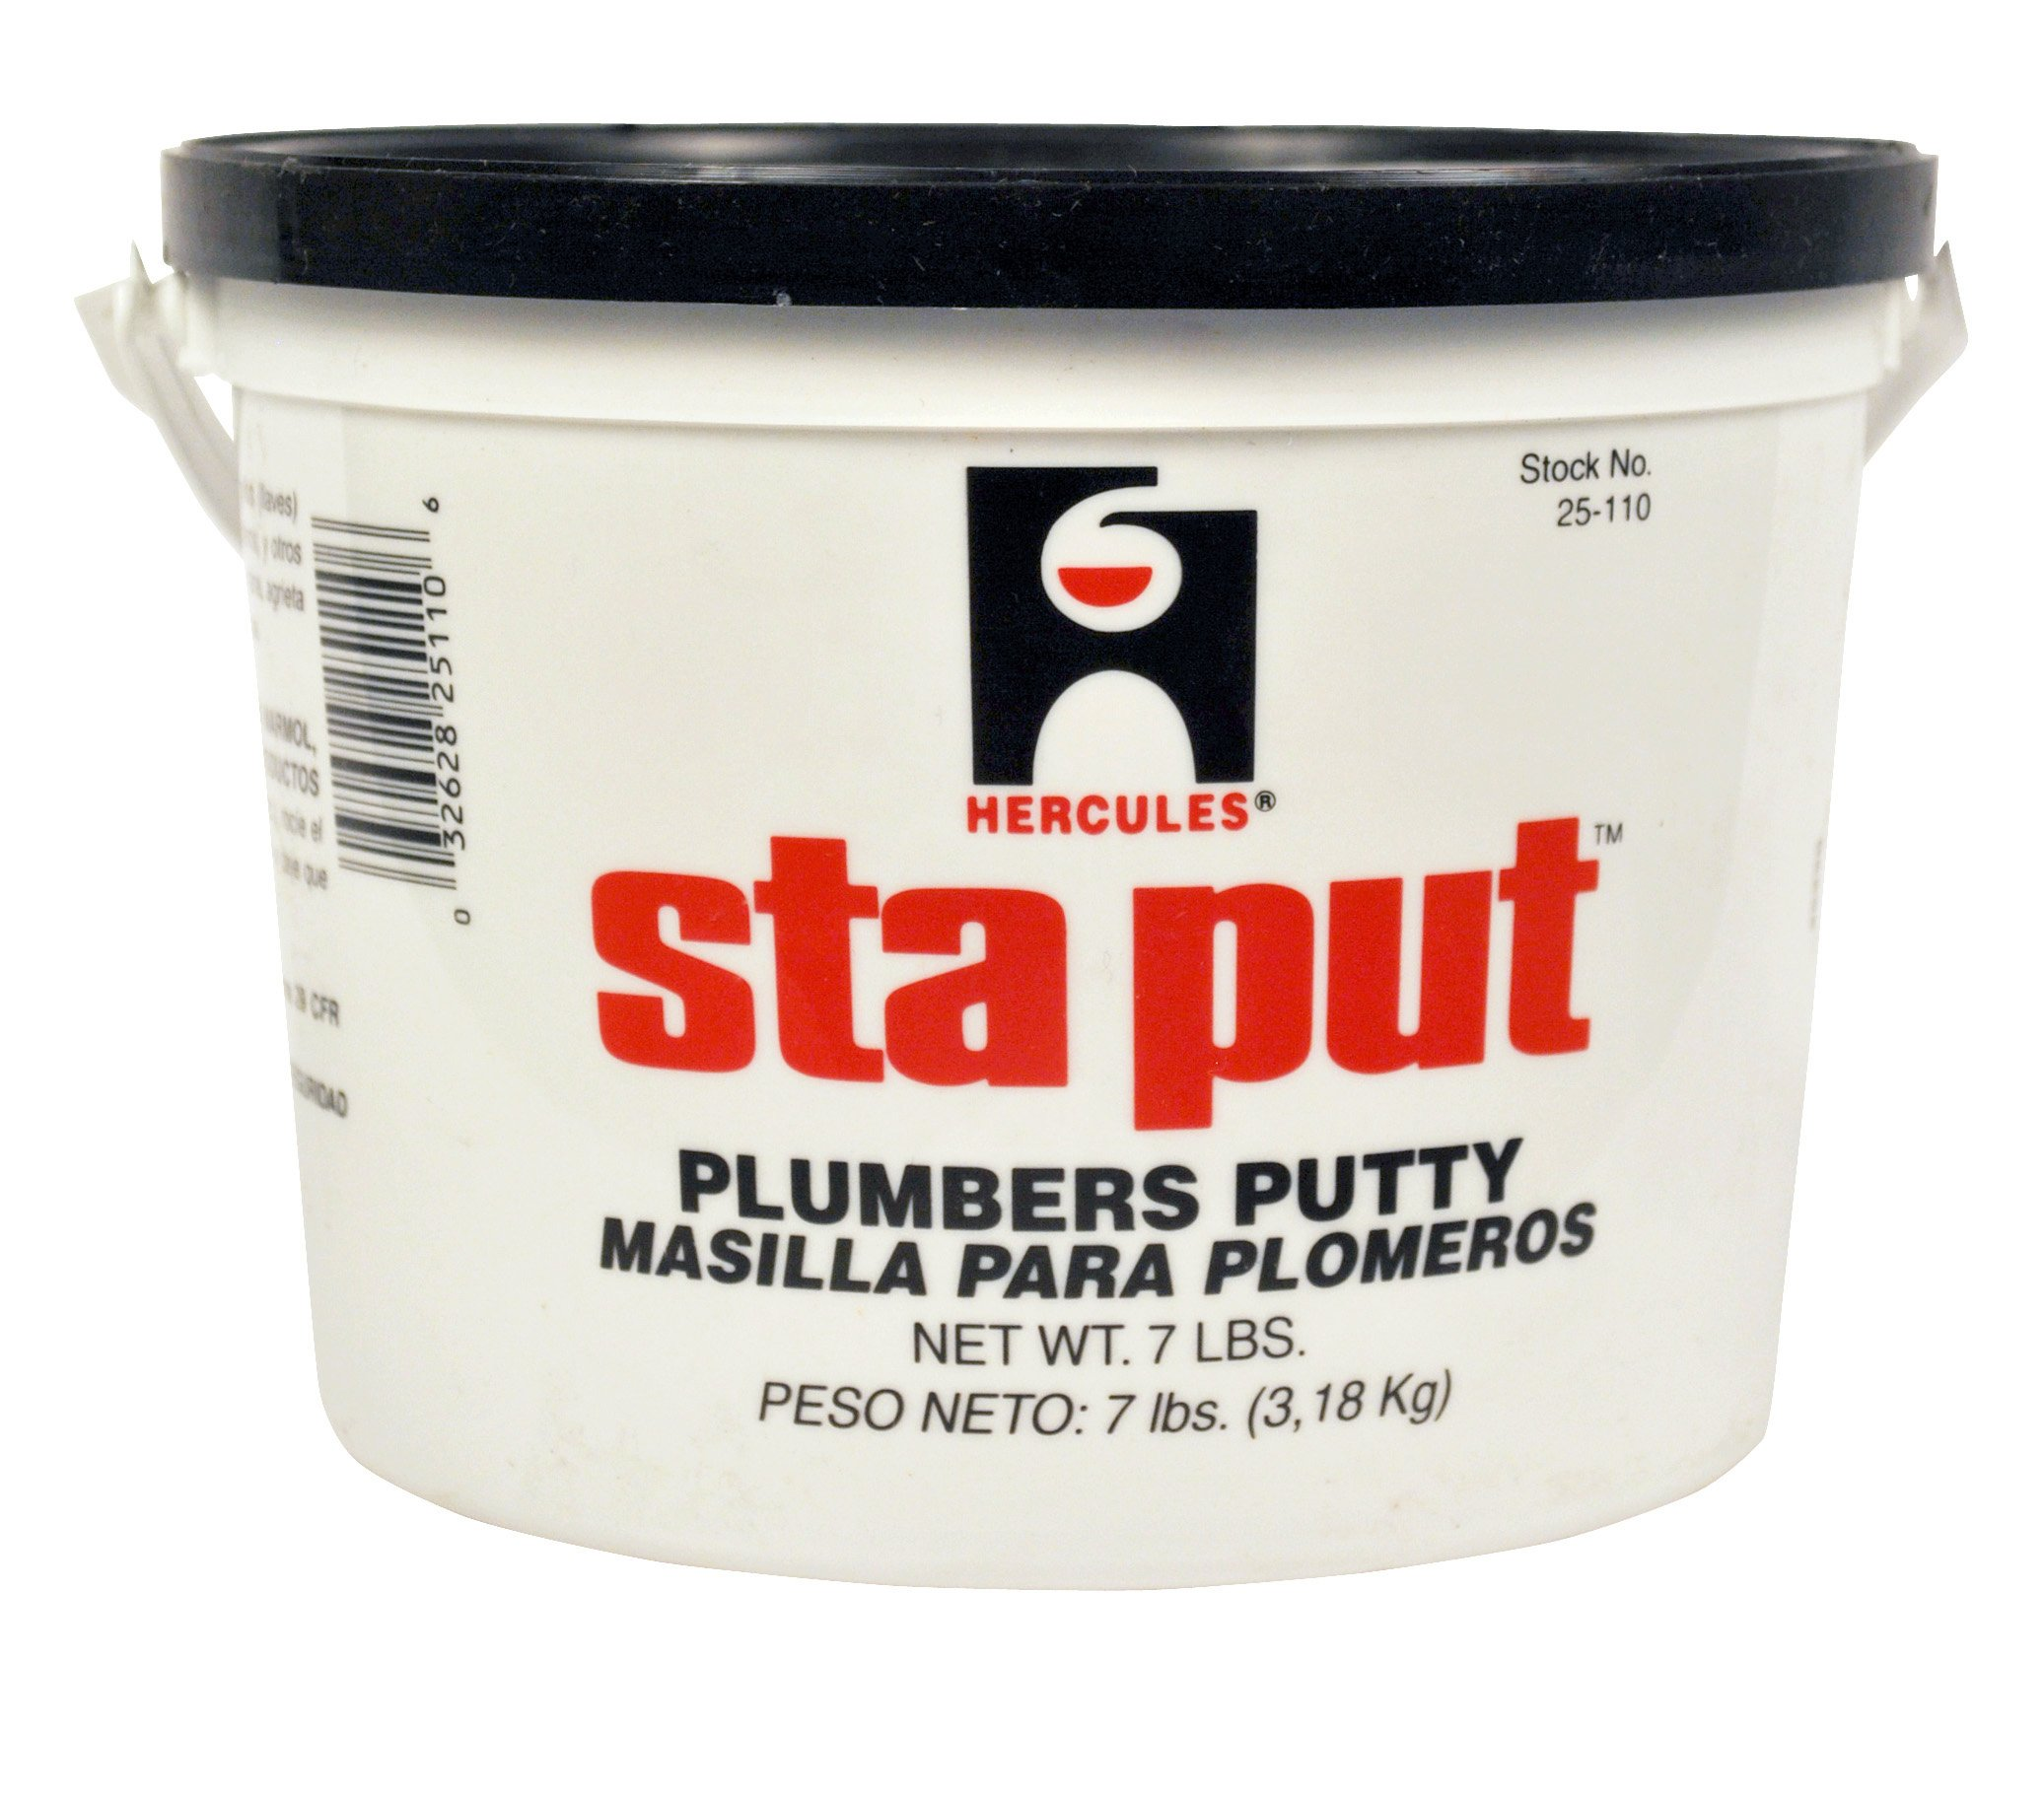 Oatey Oatey Hercules 25110 Sta Put Plumber's Putty Plastic Pail with Handle, 7 Pounds